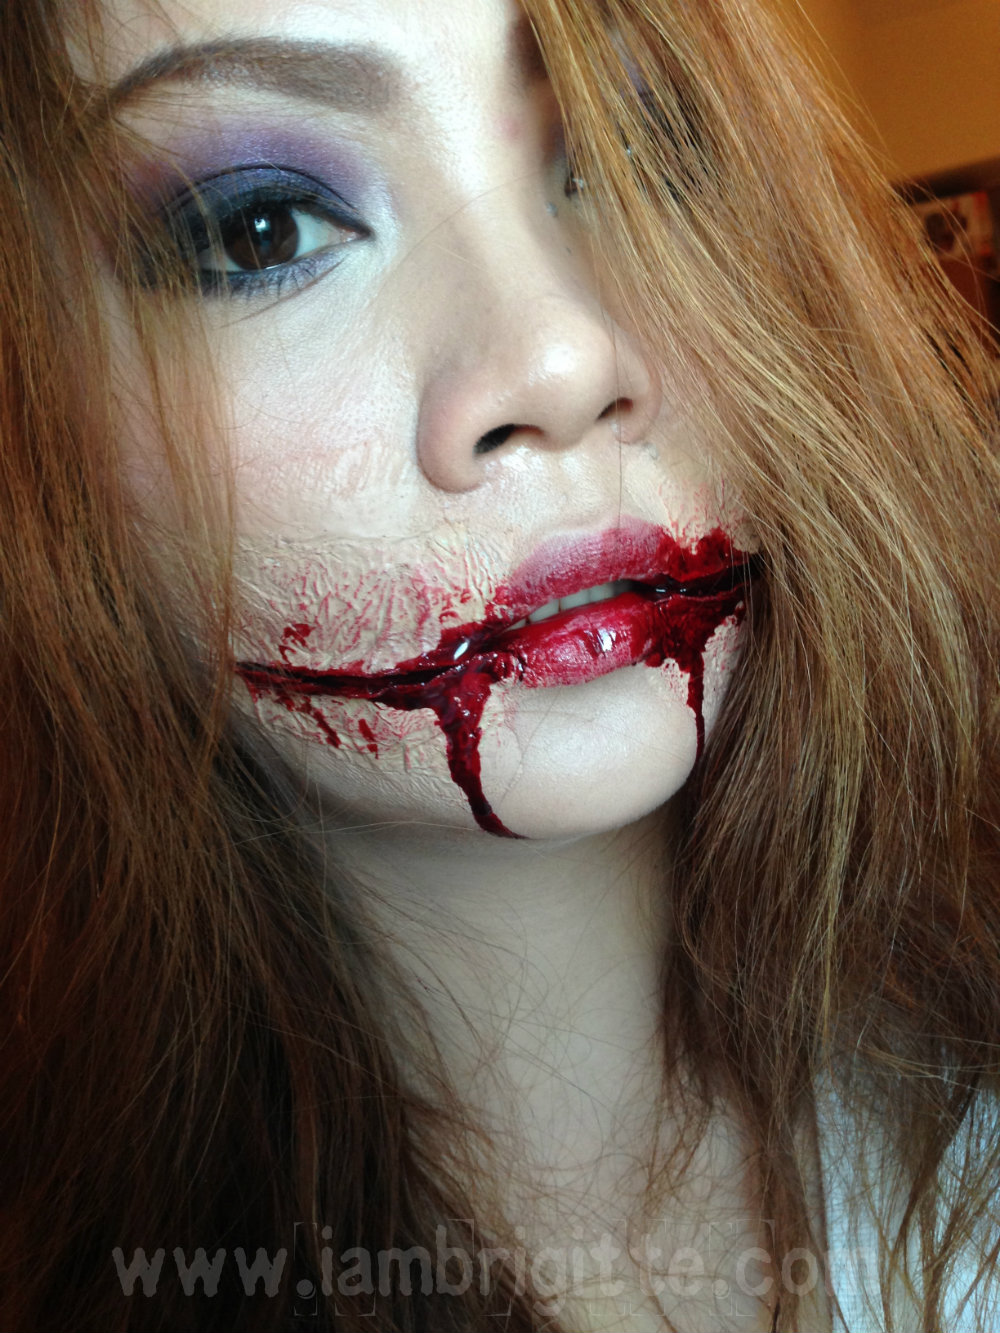 ... : Playing with Makeup: Chelsea Grin Halloween Makeup Look